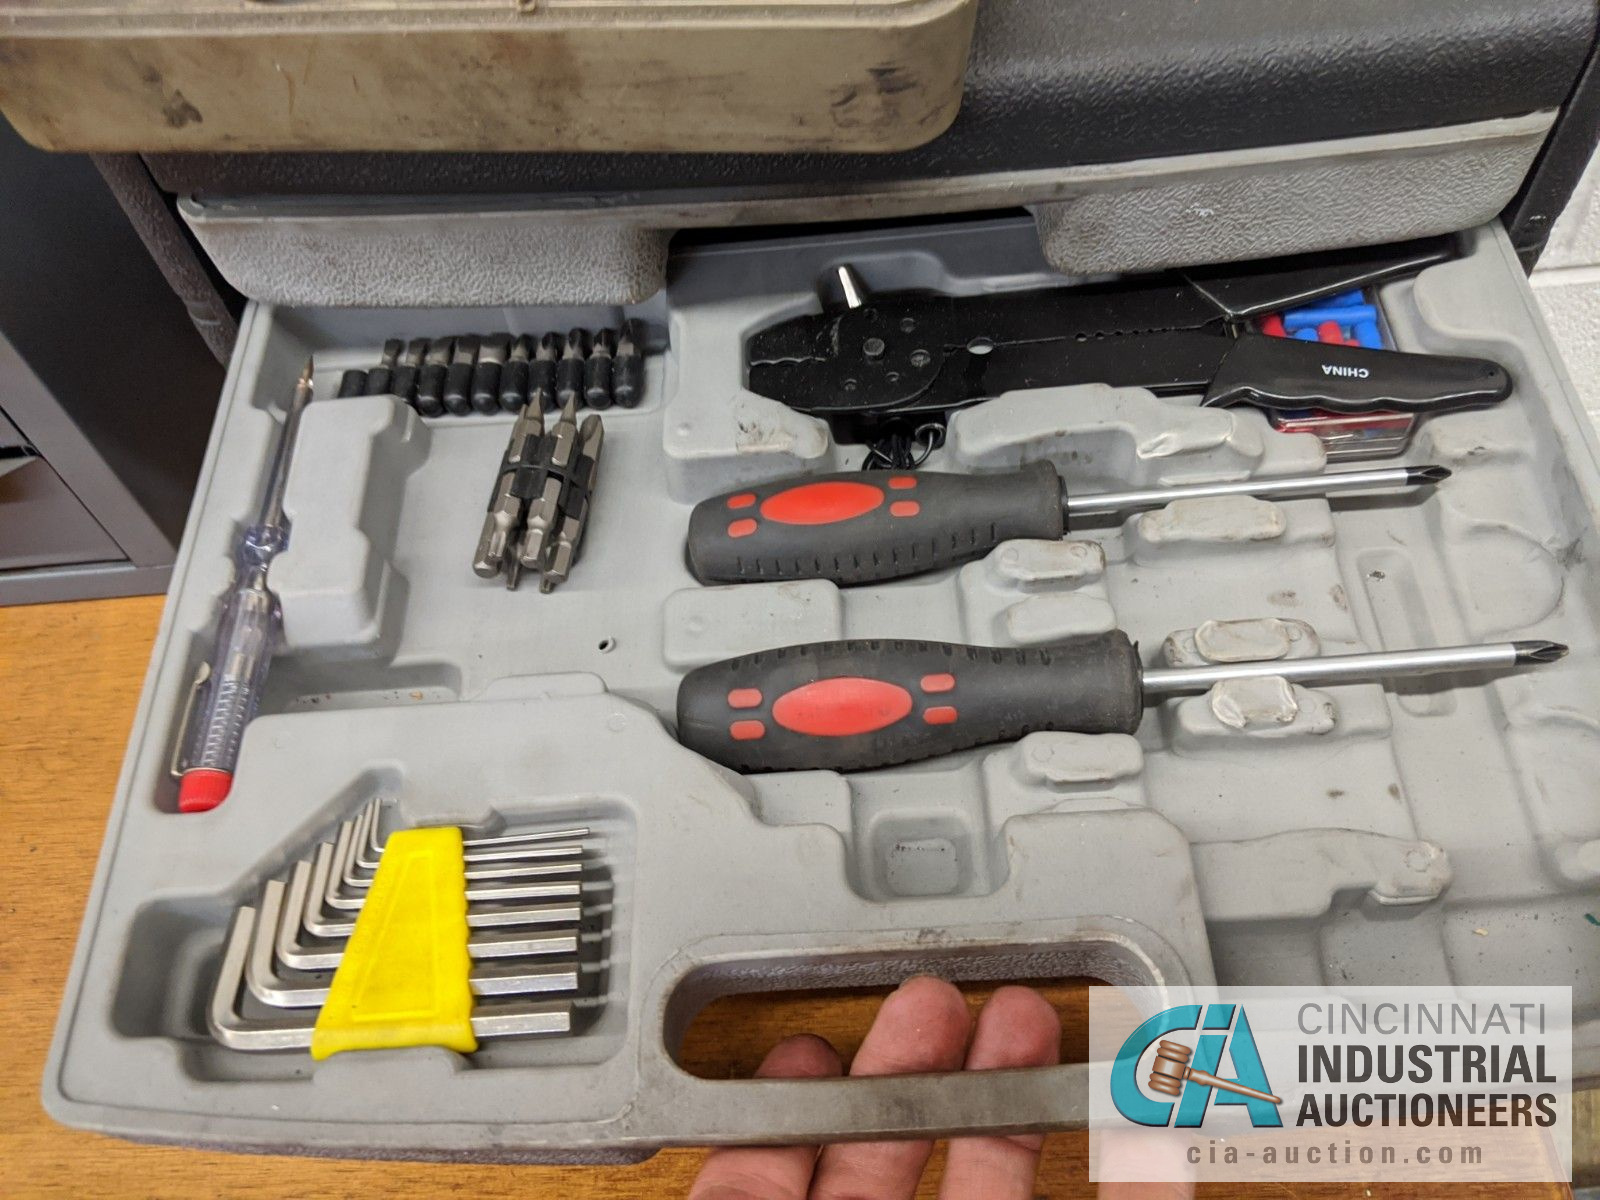 (LOT) TOOL SETS WITH WRENCHES, SOCKETS, OTHER - Image 3 of 5